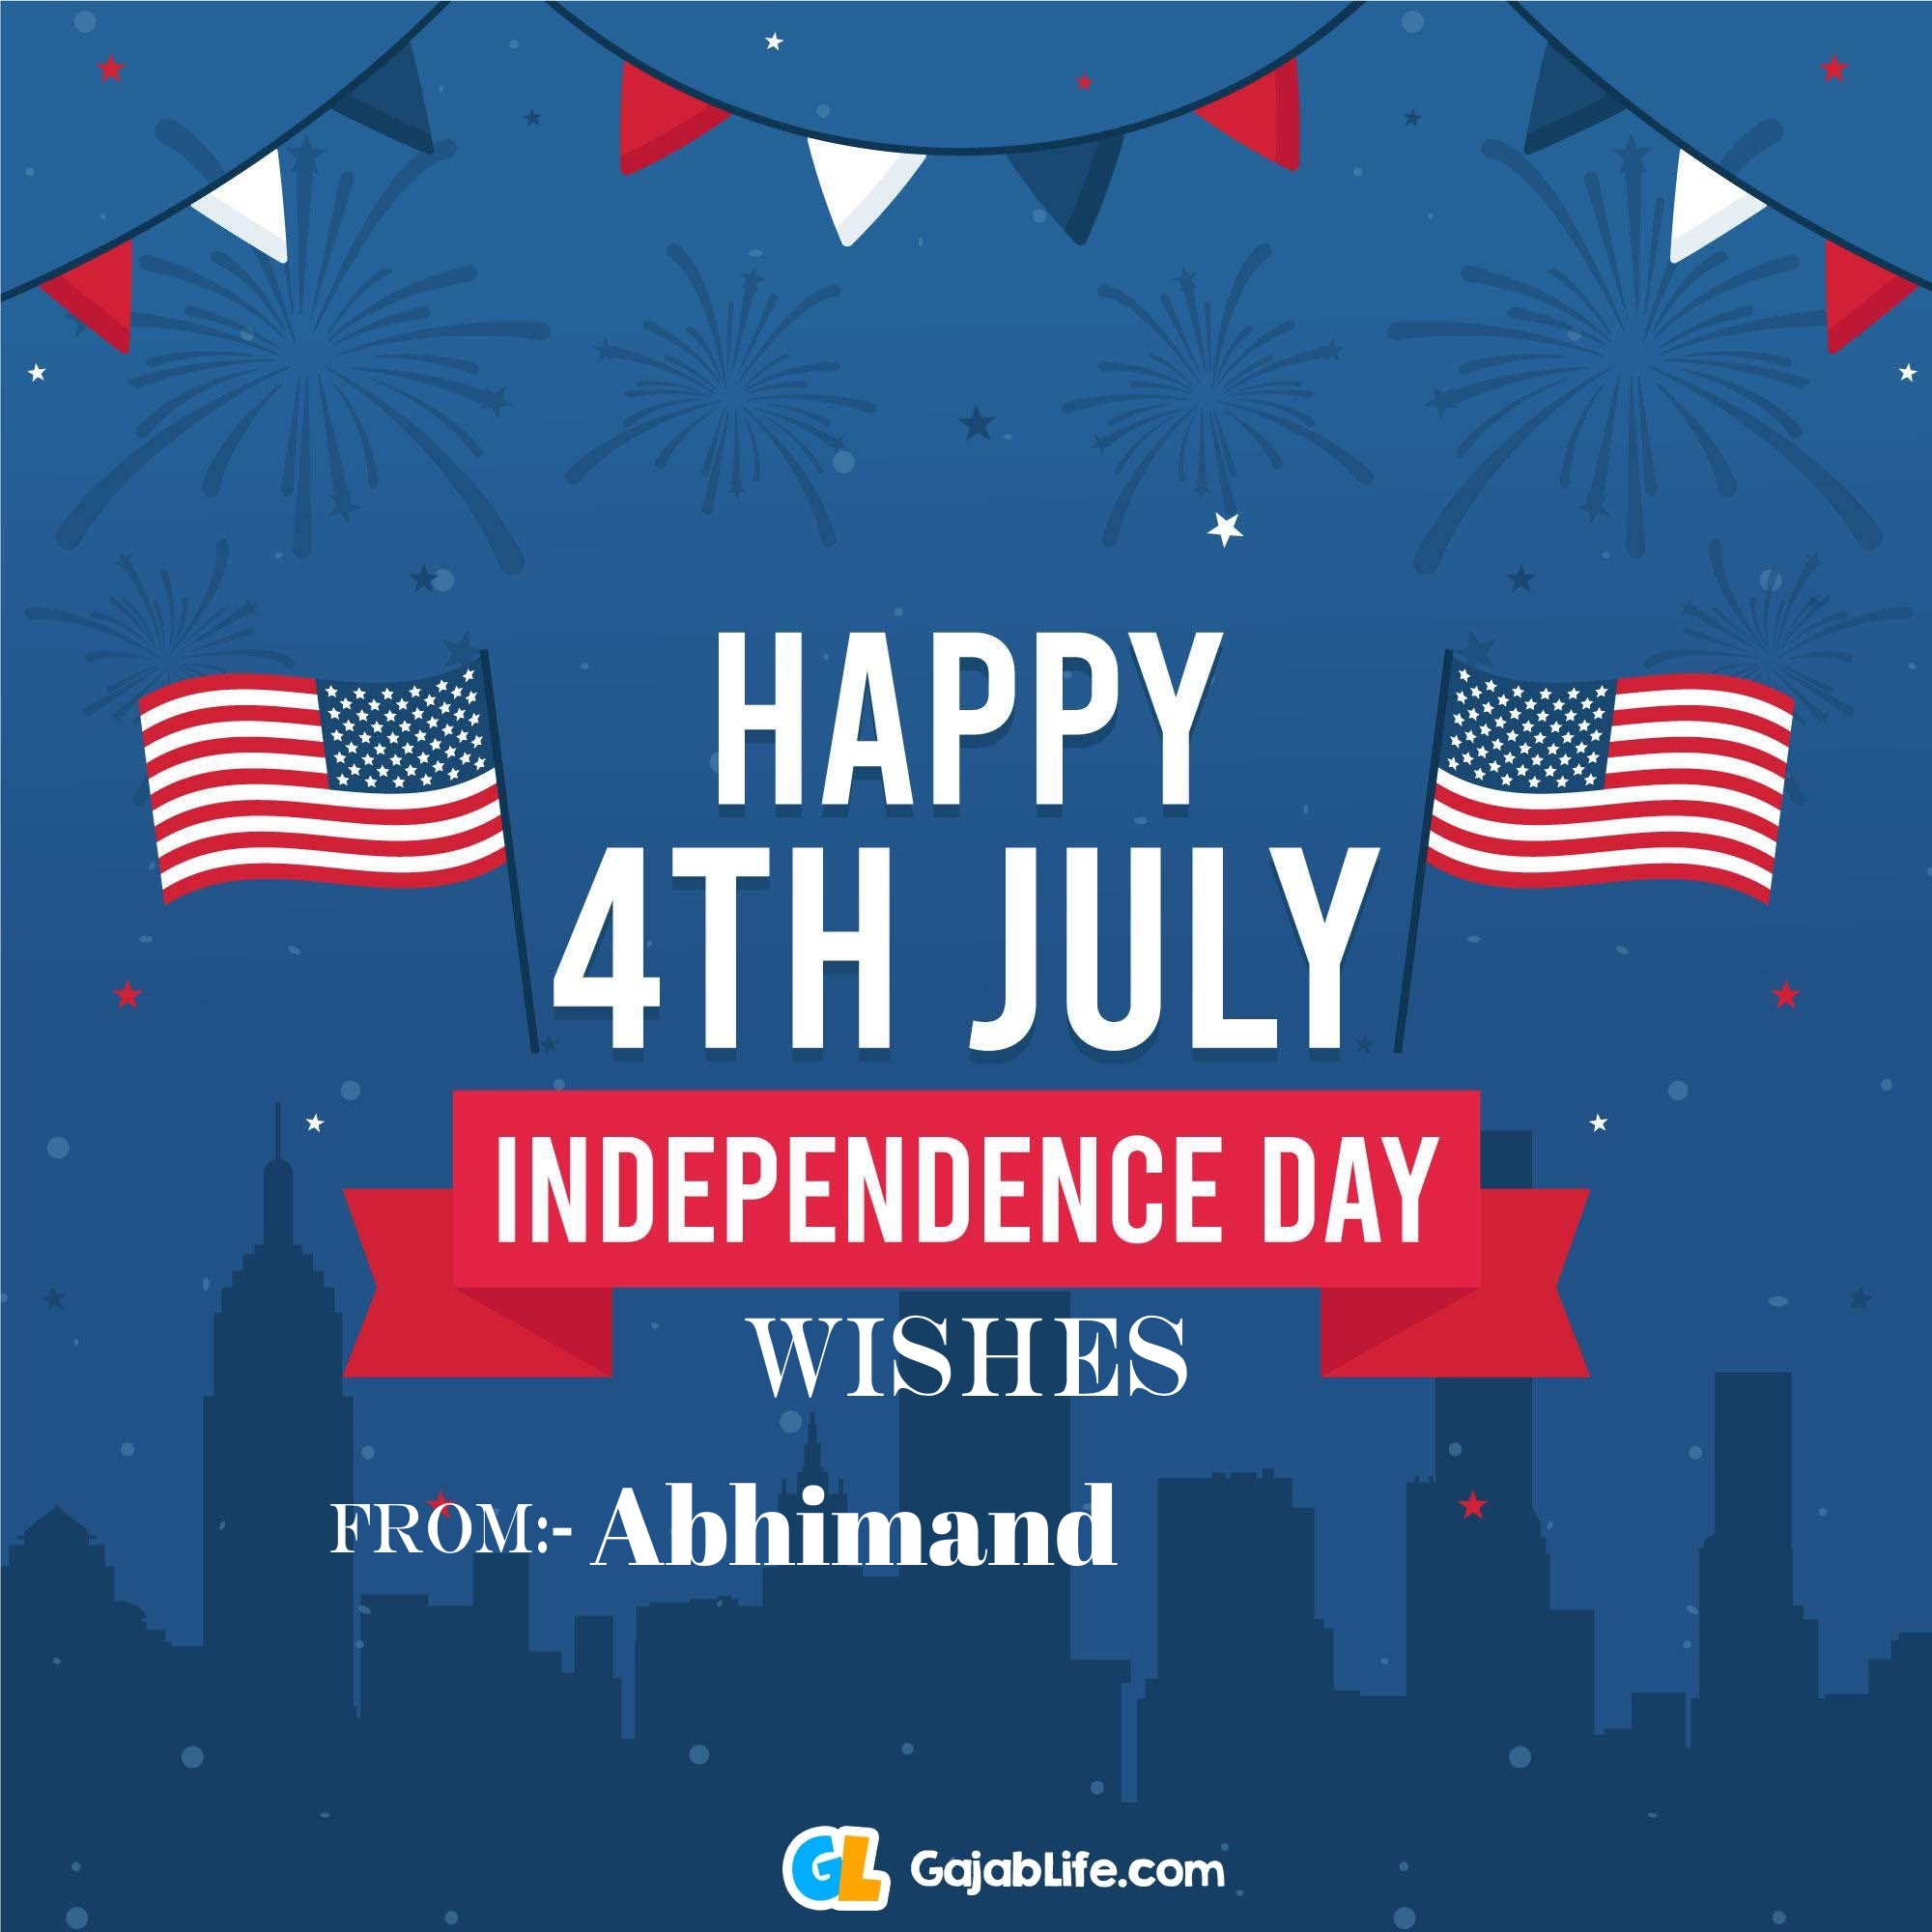 Abhimand happy independence day united states of america images